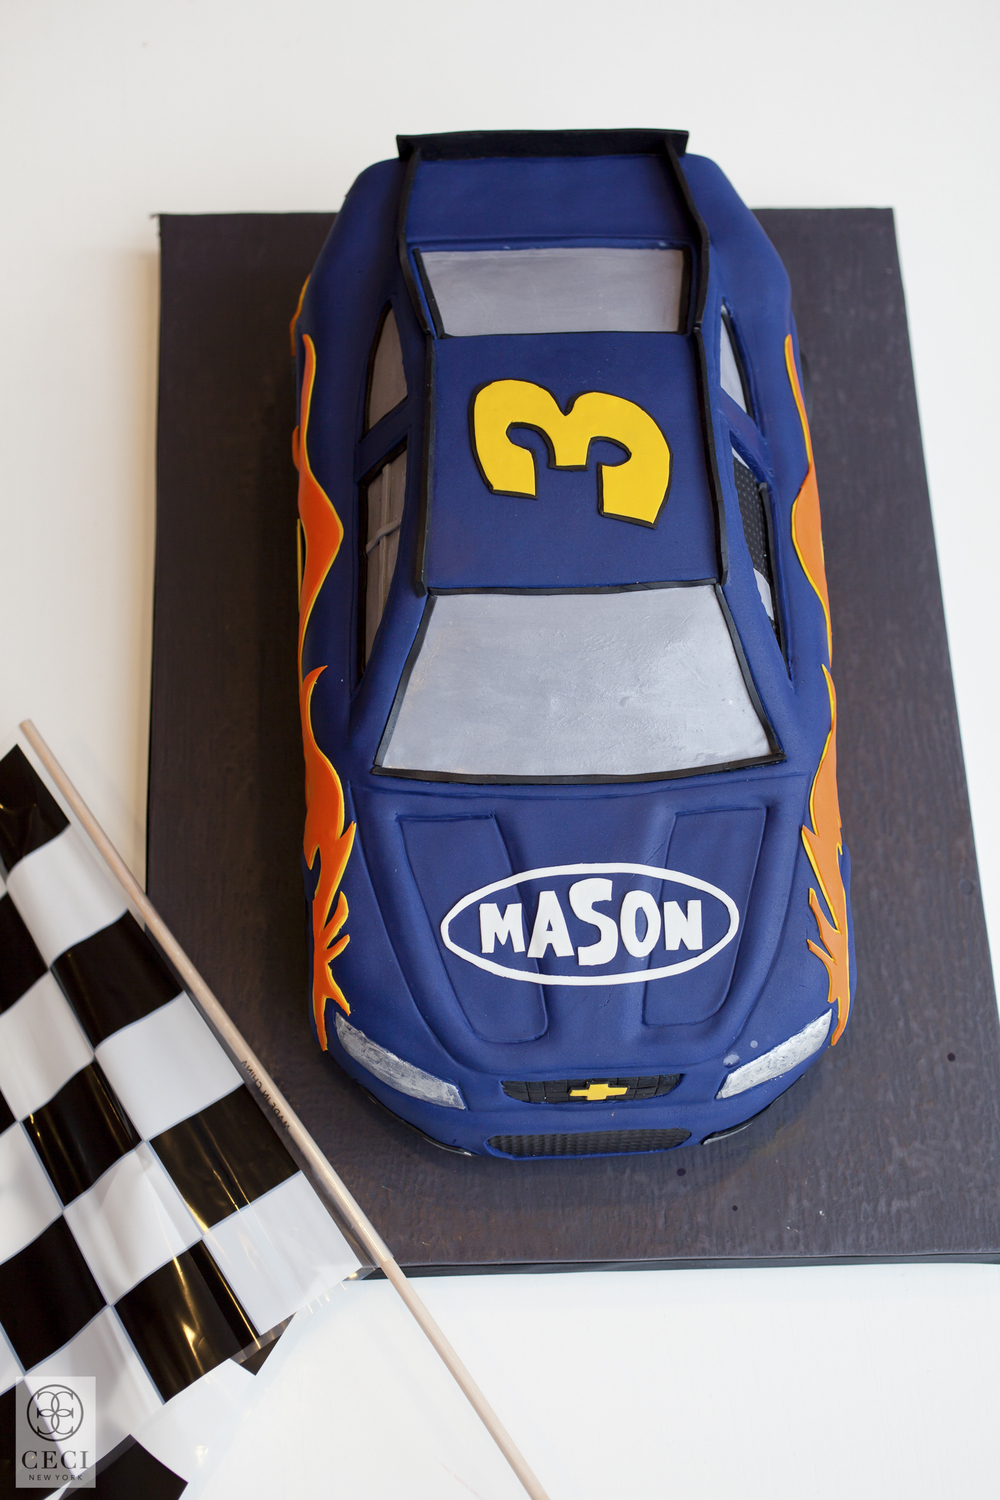 ceci_new_york_mason_ceci_johnson_race_car_birthday_party-4.jpg